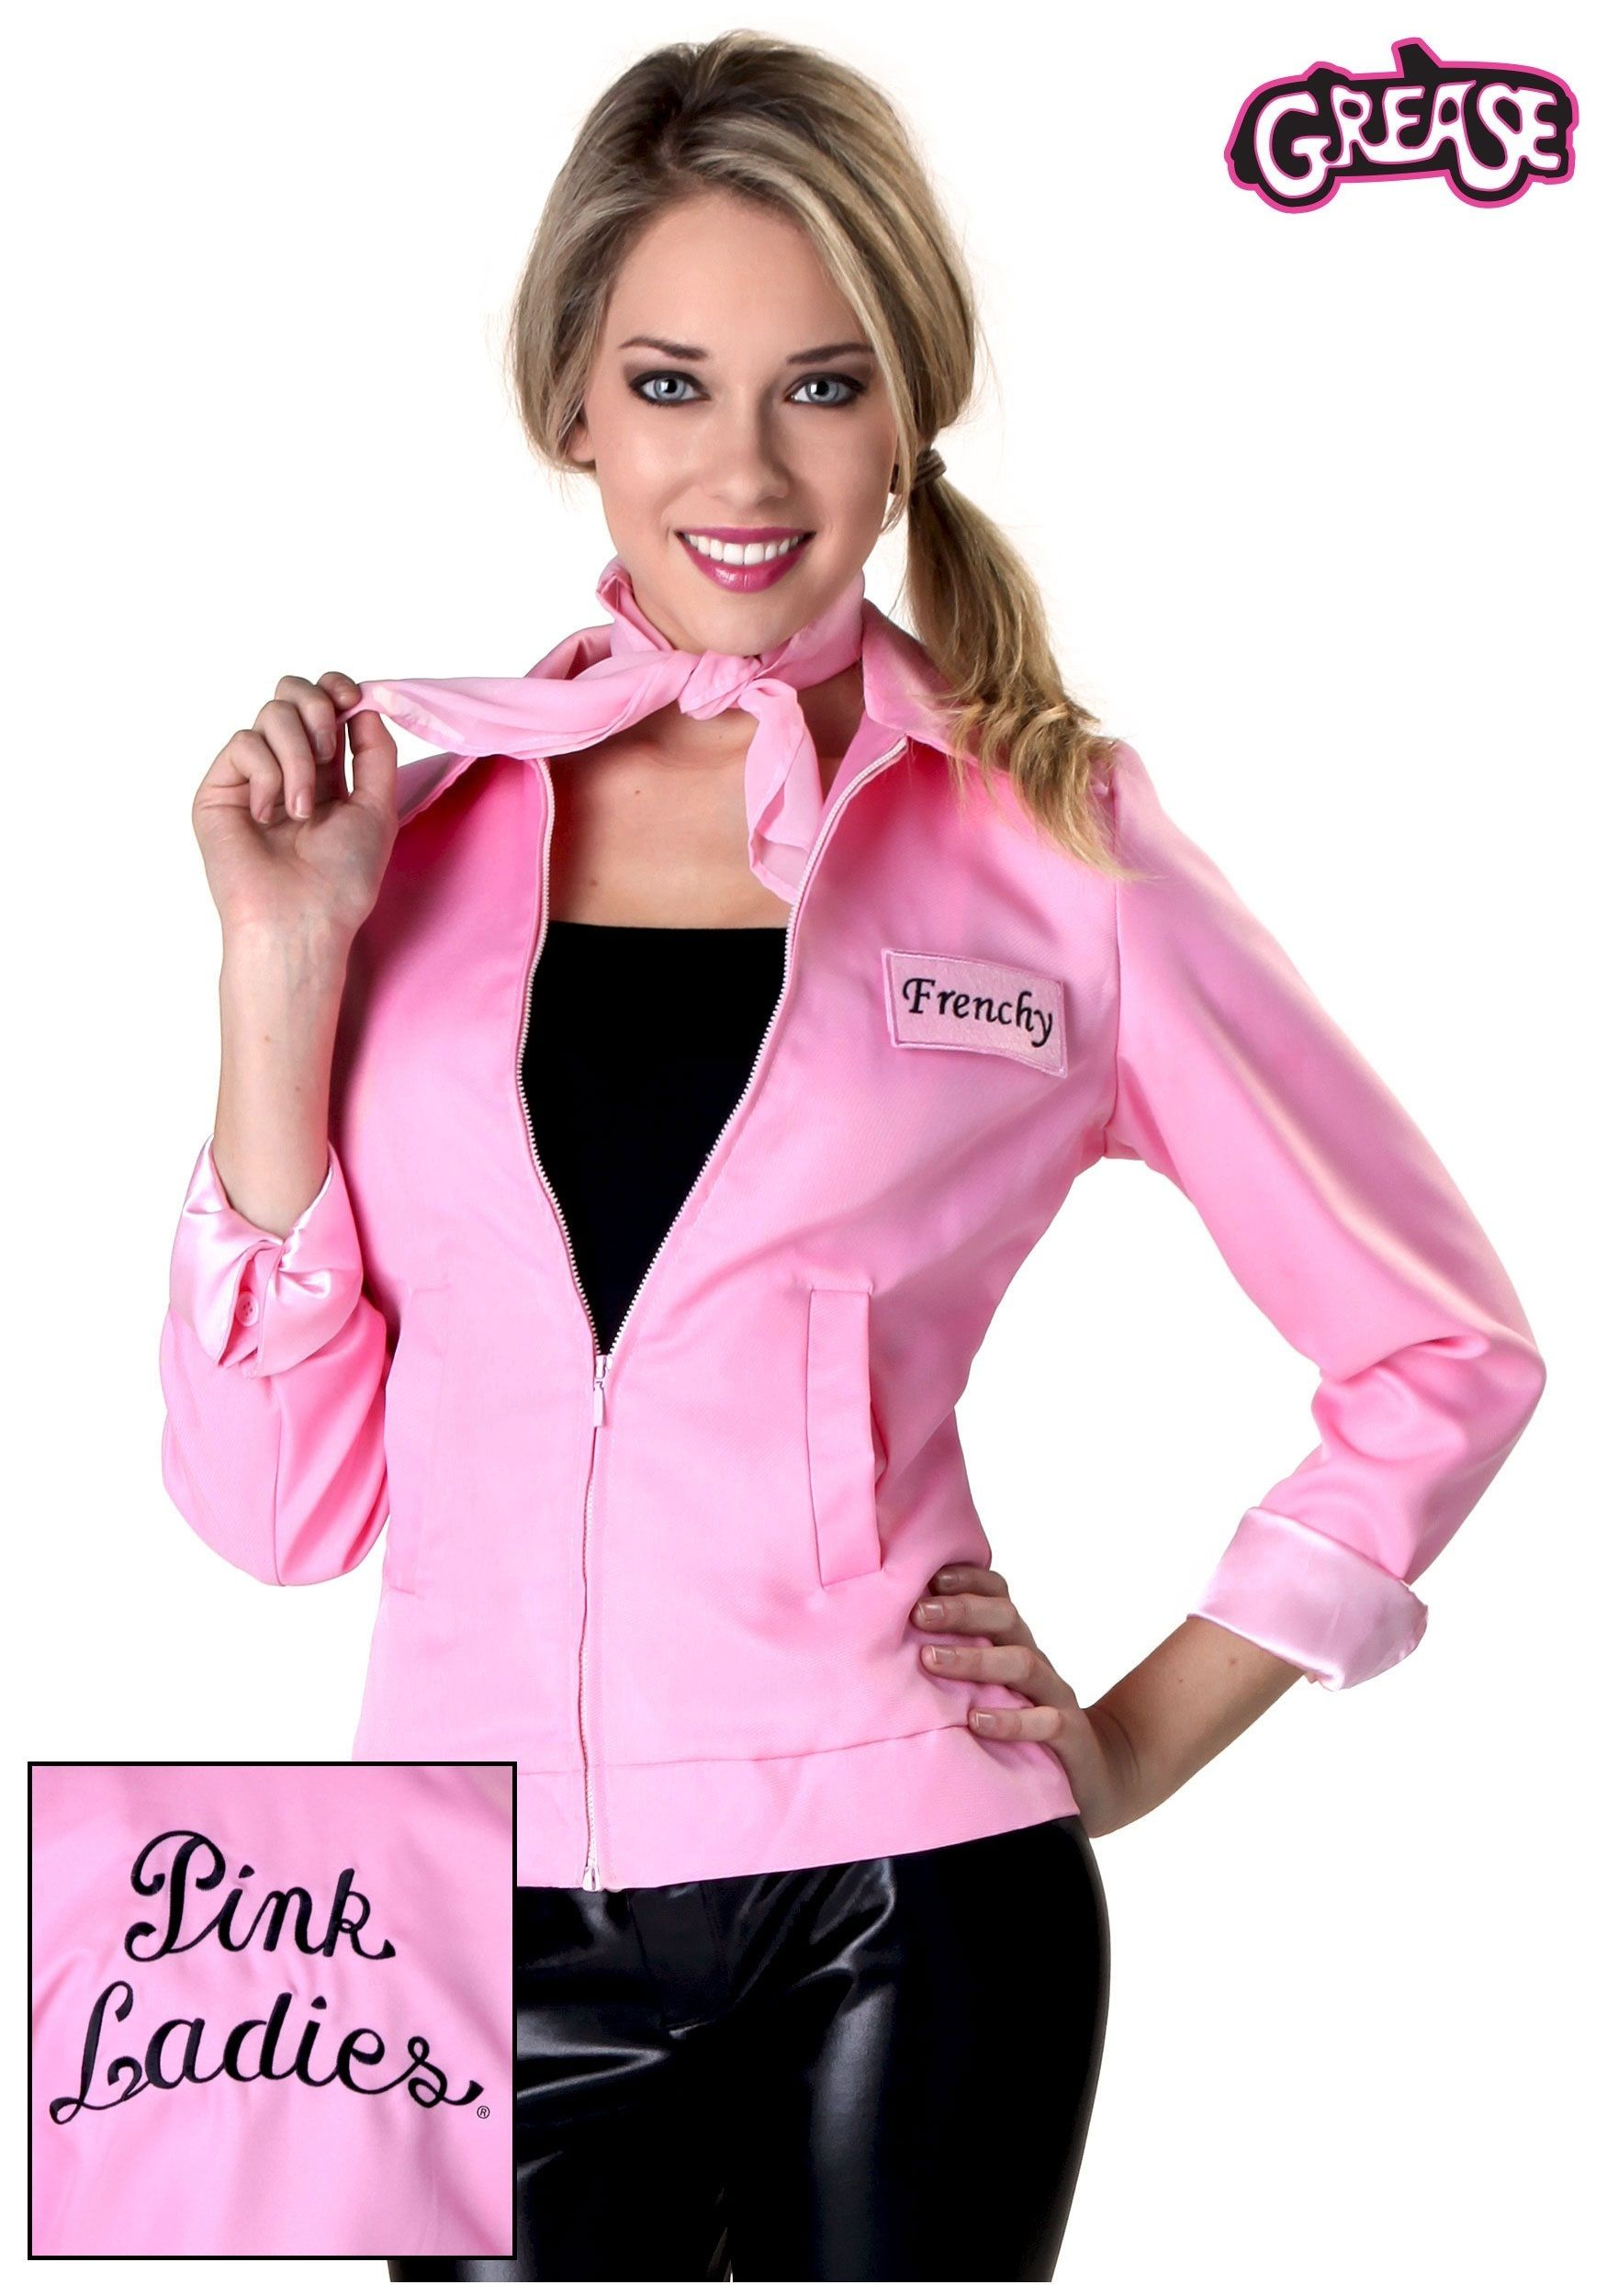 09802f6d2aa Authentic Grease Pink Ladies Jacket. Authentic Grease Pink Ladies Jacket  50s Costume